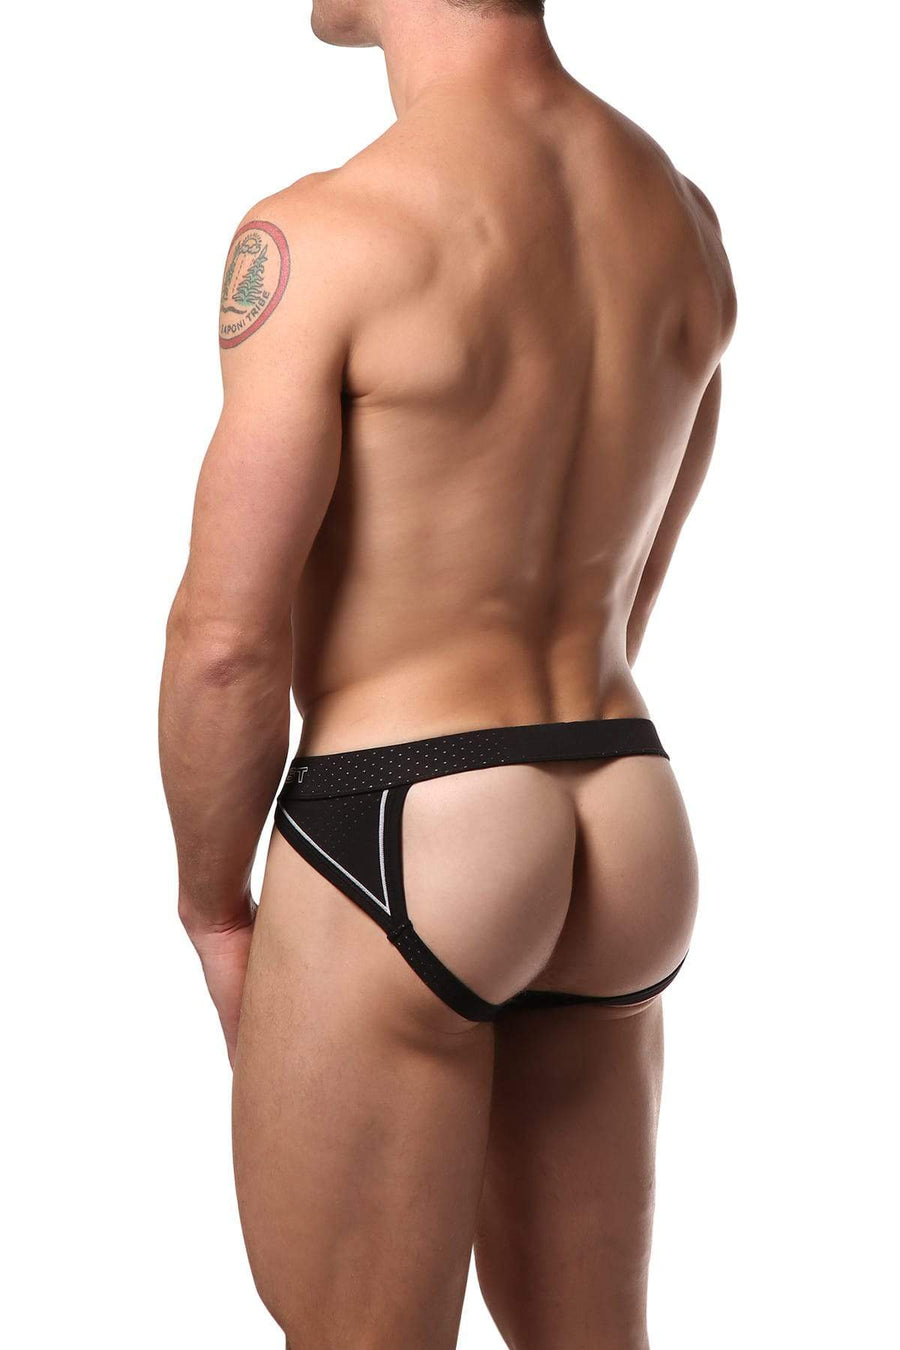 Jocks - 2(X)IST Black Cross Trainer Jockstrap -   jetcube